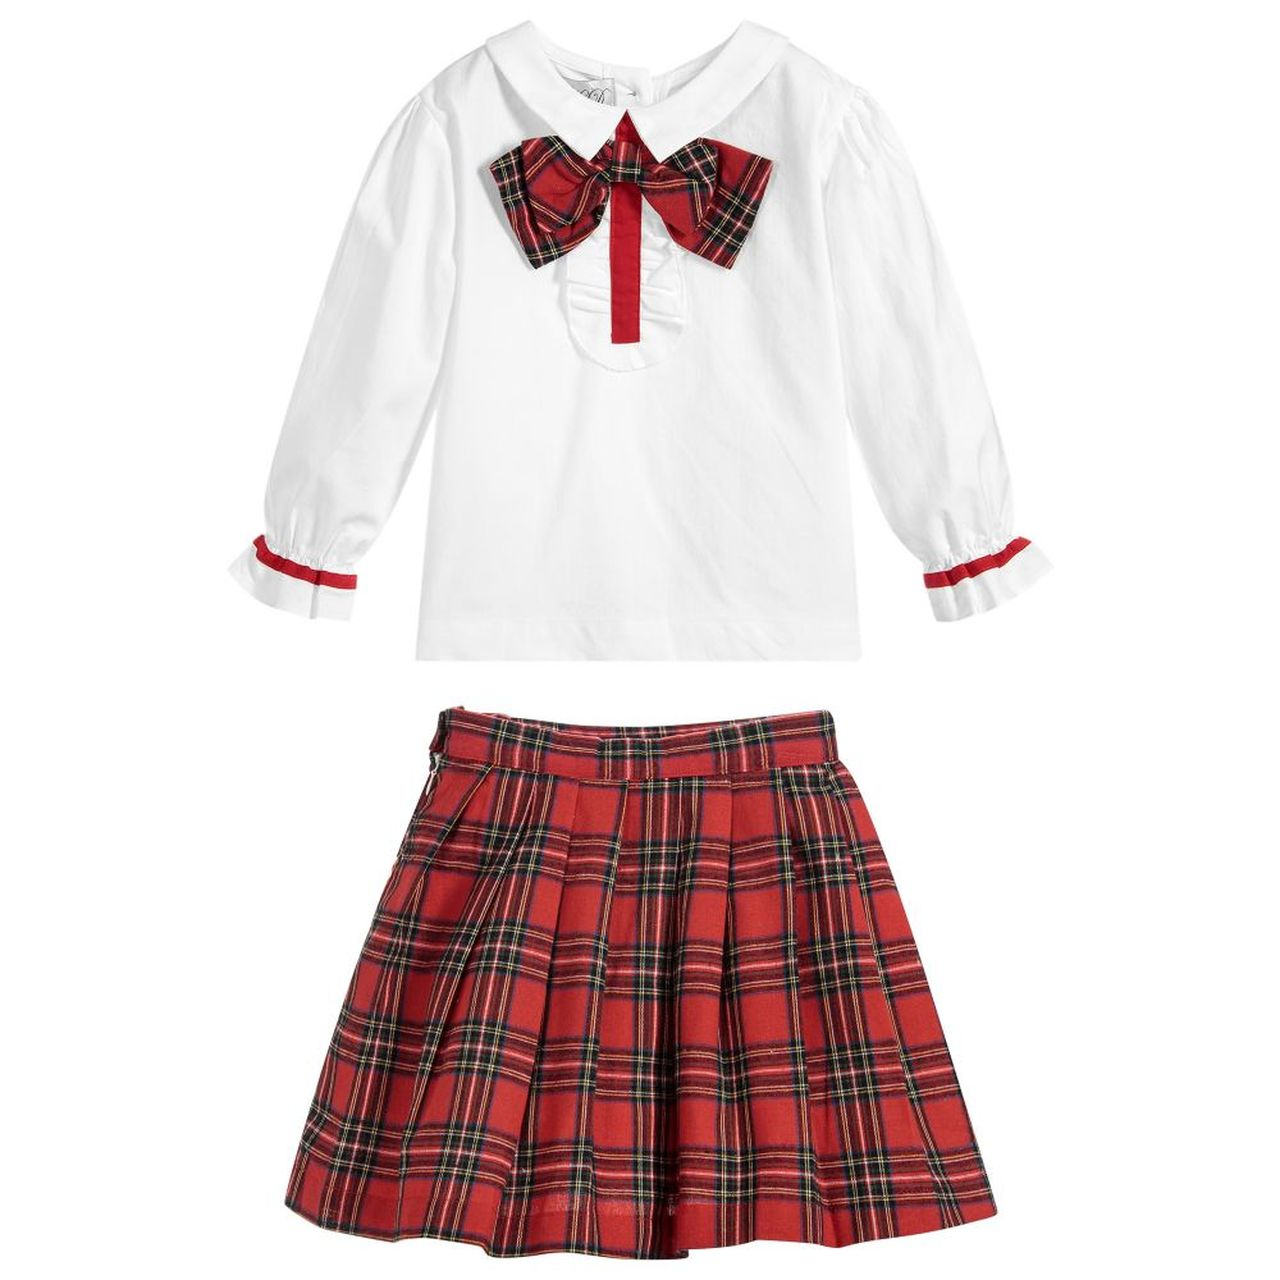 Beau Kid Tartan Skirt Set